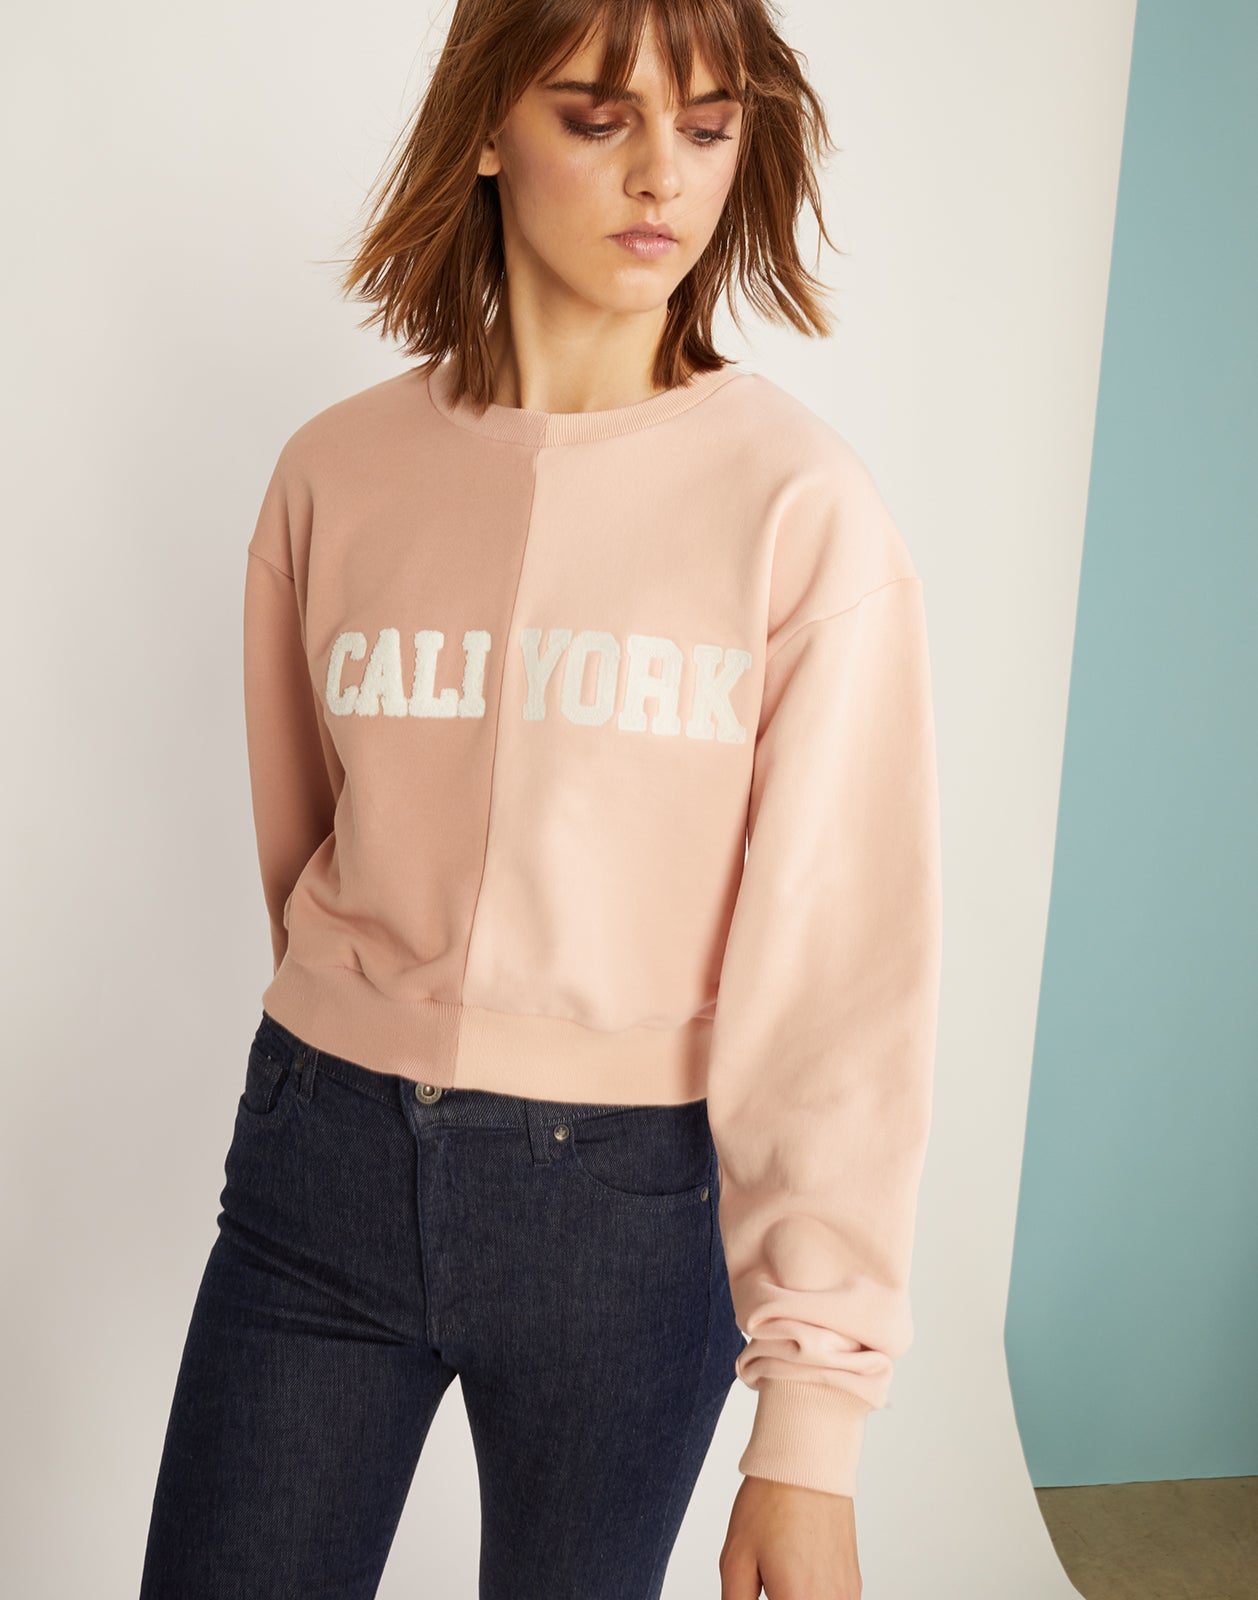 Front view of the half beige, half pink caliyork cropped sweatshirt in soft cotton.